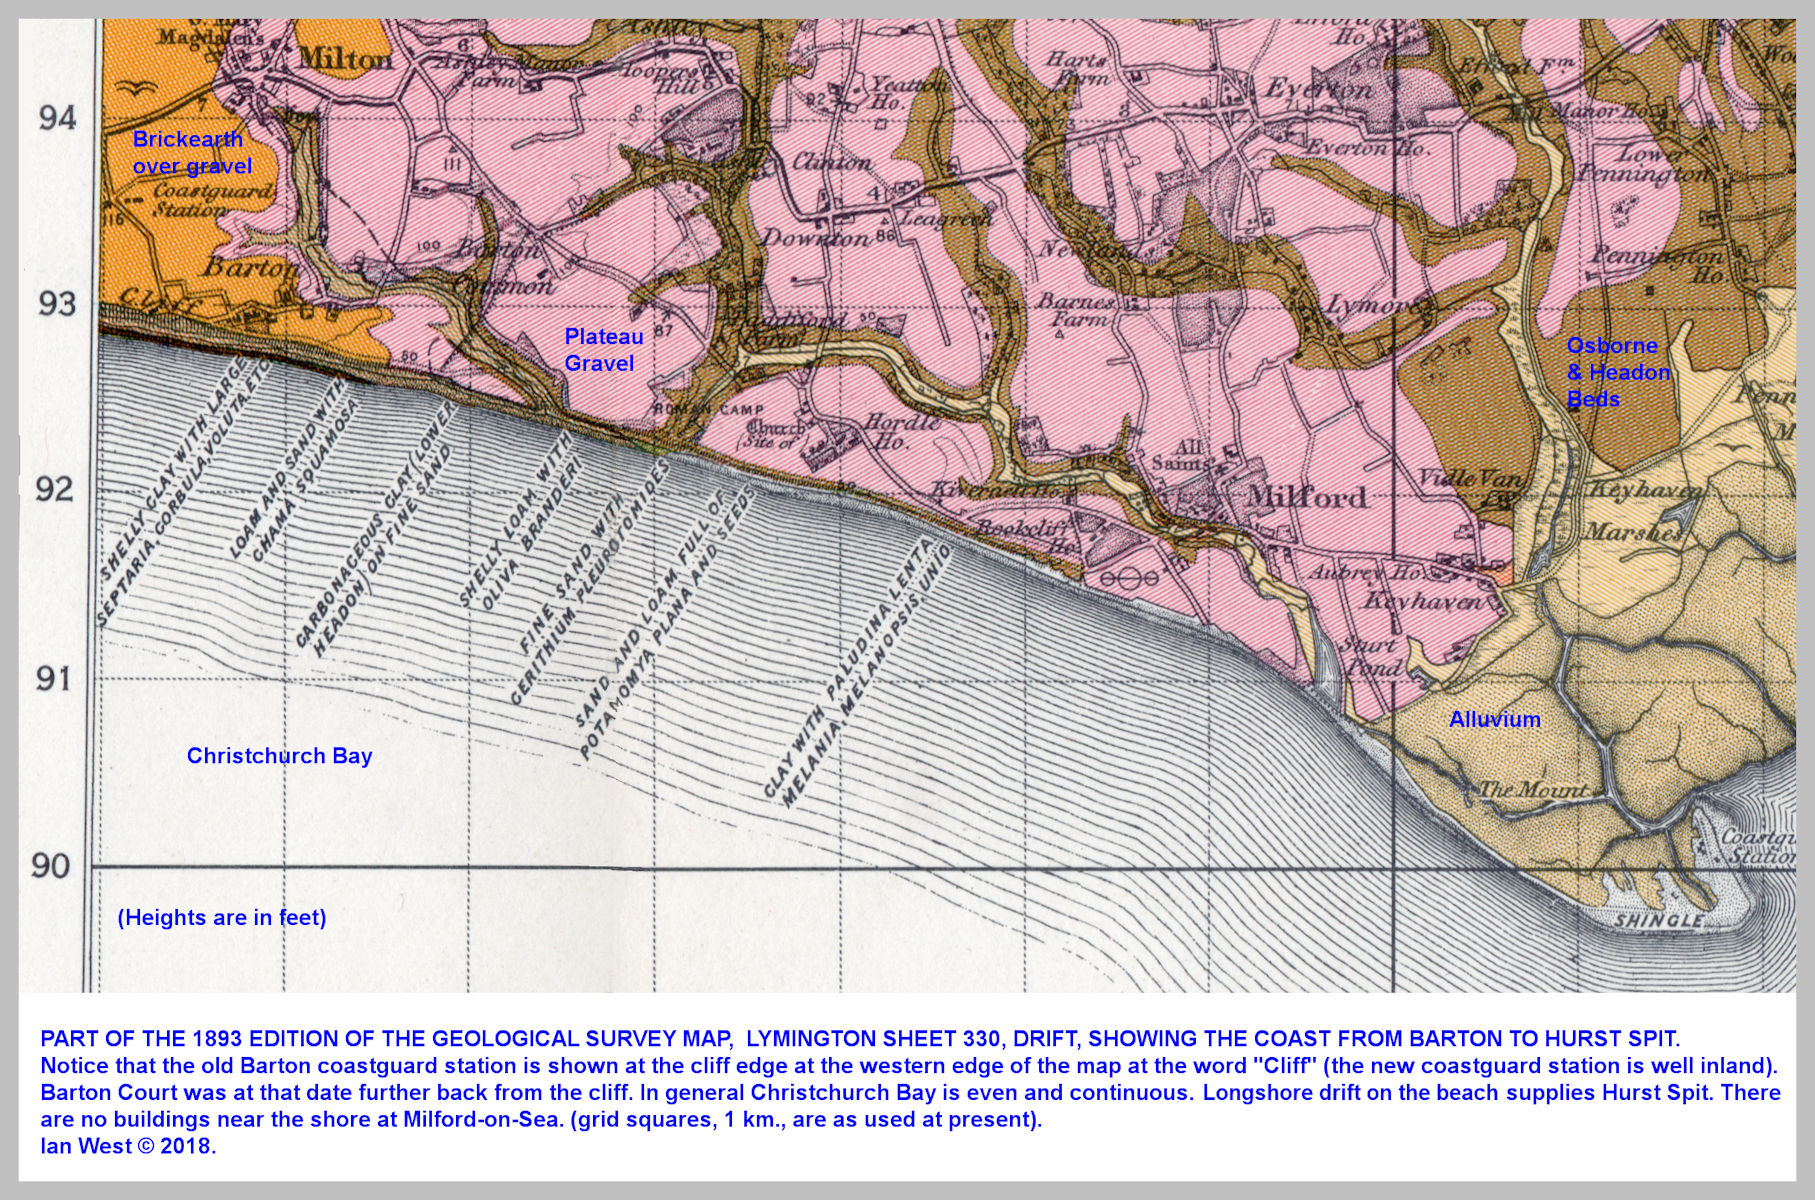 A selected part of the 1893 Geological Survey Map, Lymington Sheet, 330, Drift, original - one inch to one mile - it shows the coast from Barton-on-Sea to Hurst Spit